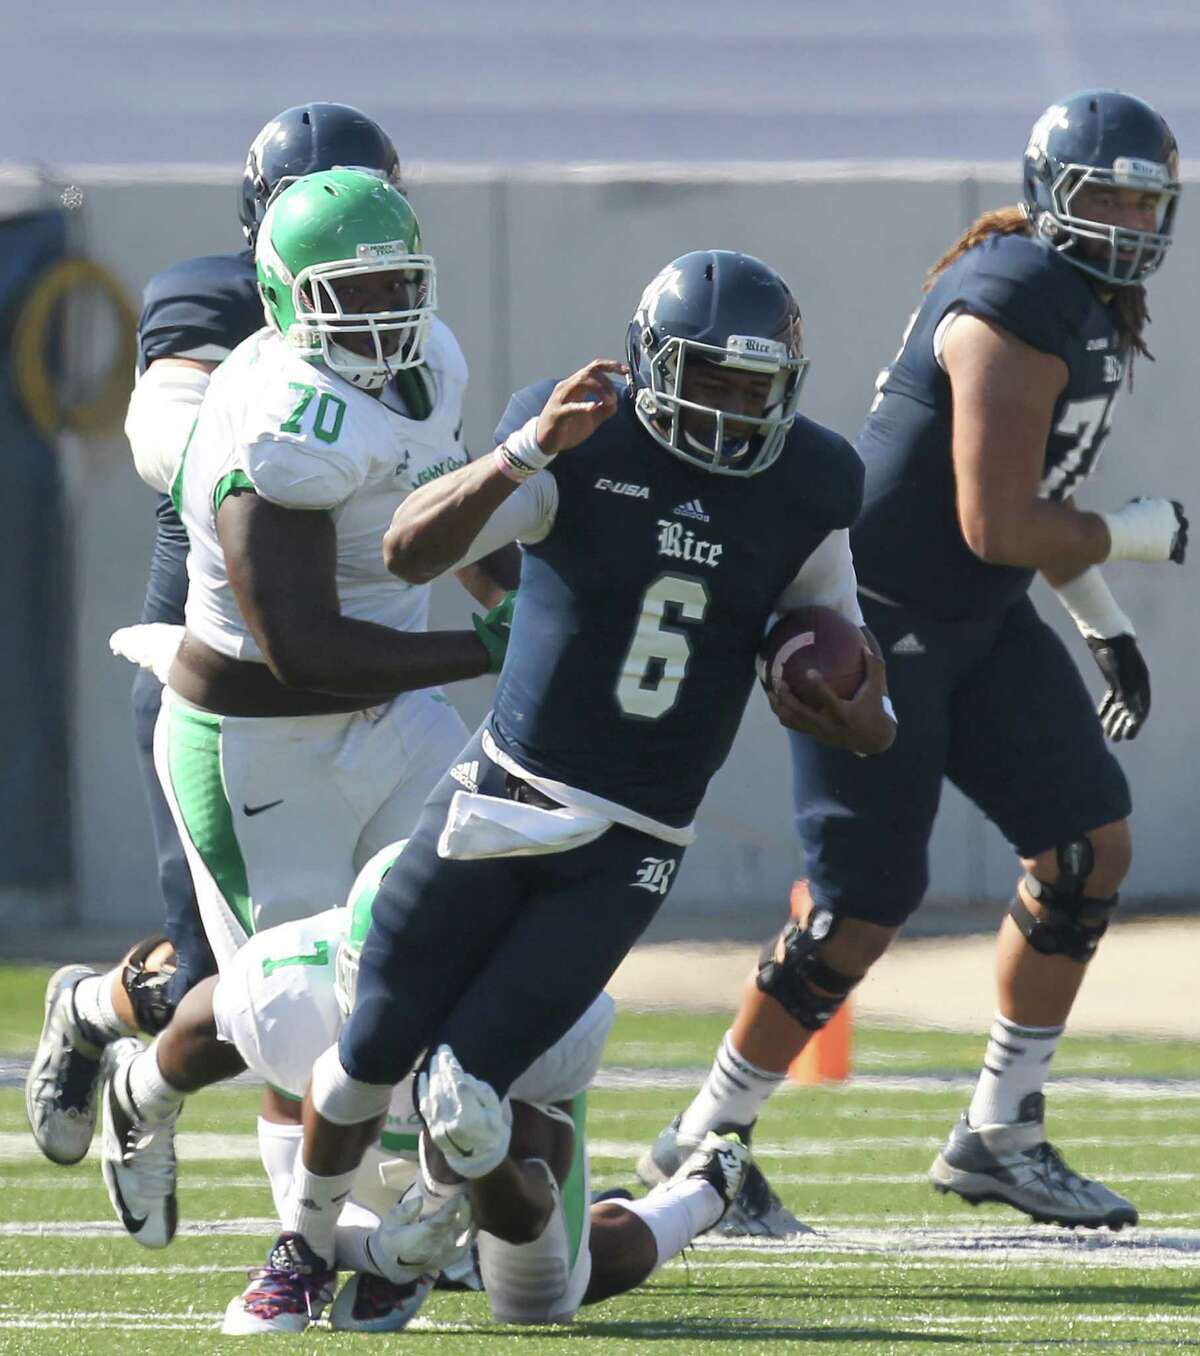 Rice Owls quarterback Driphus Jackson (6) is sacked by North Texas Mean Green linebacker Derek Akunne (7) in a Conference USA football game in the first half on Saturday, October 25, 2014 at Rice Stadium in Houston, TX.